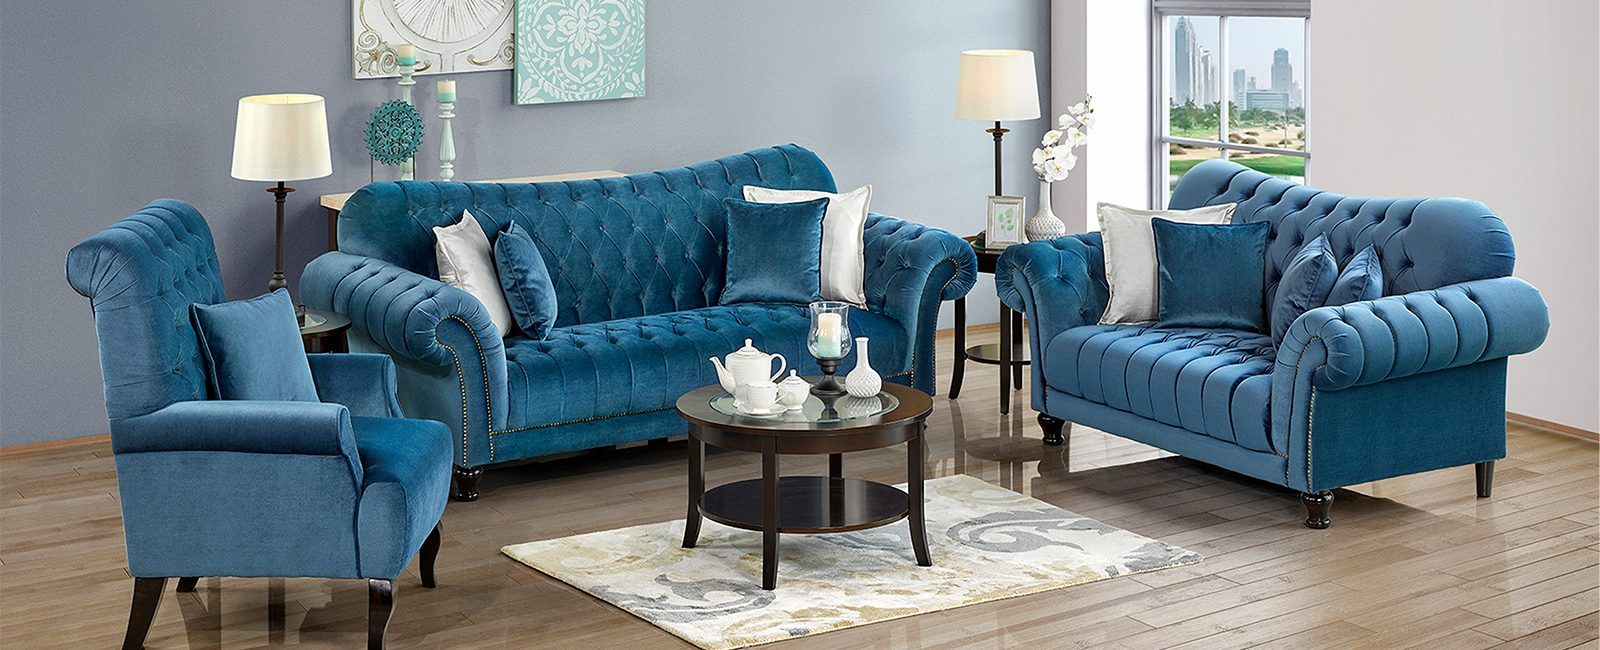 Royal Furniture Best Furniture Store In Dubai Royal Furniture Furniture Affordable Contemporary Furniture